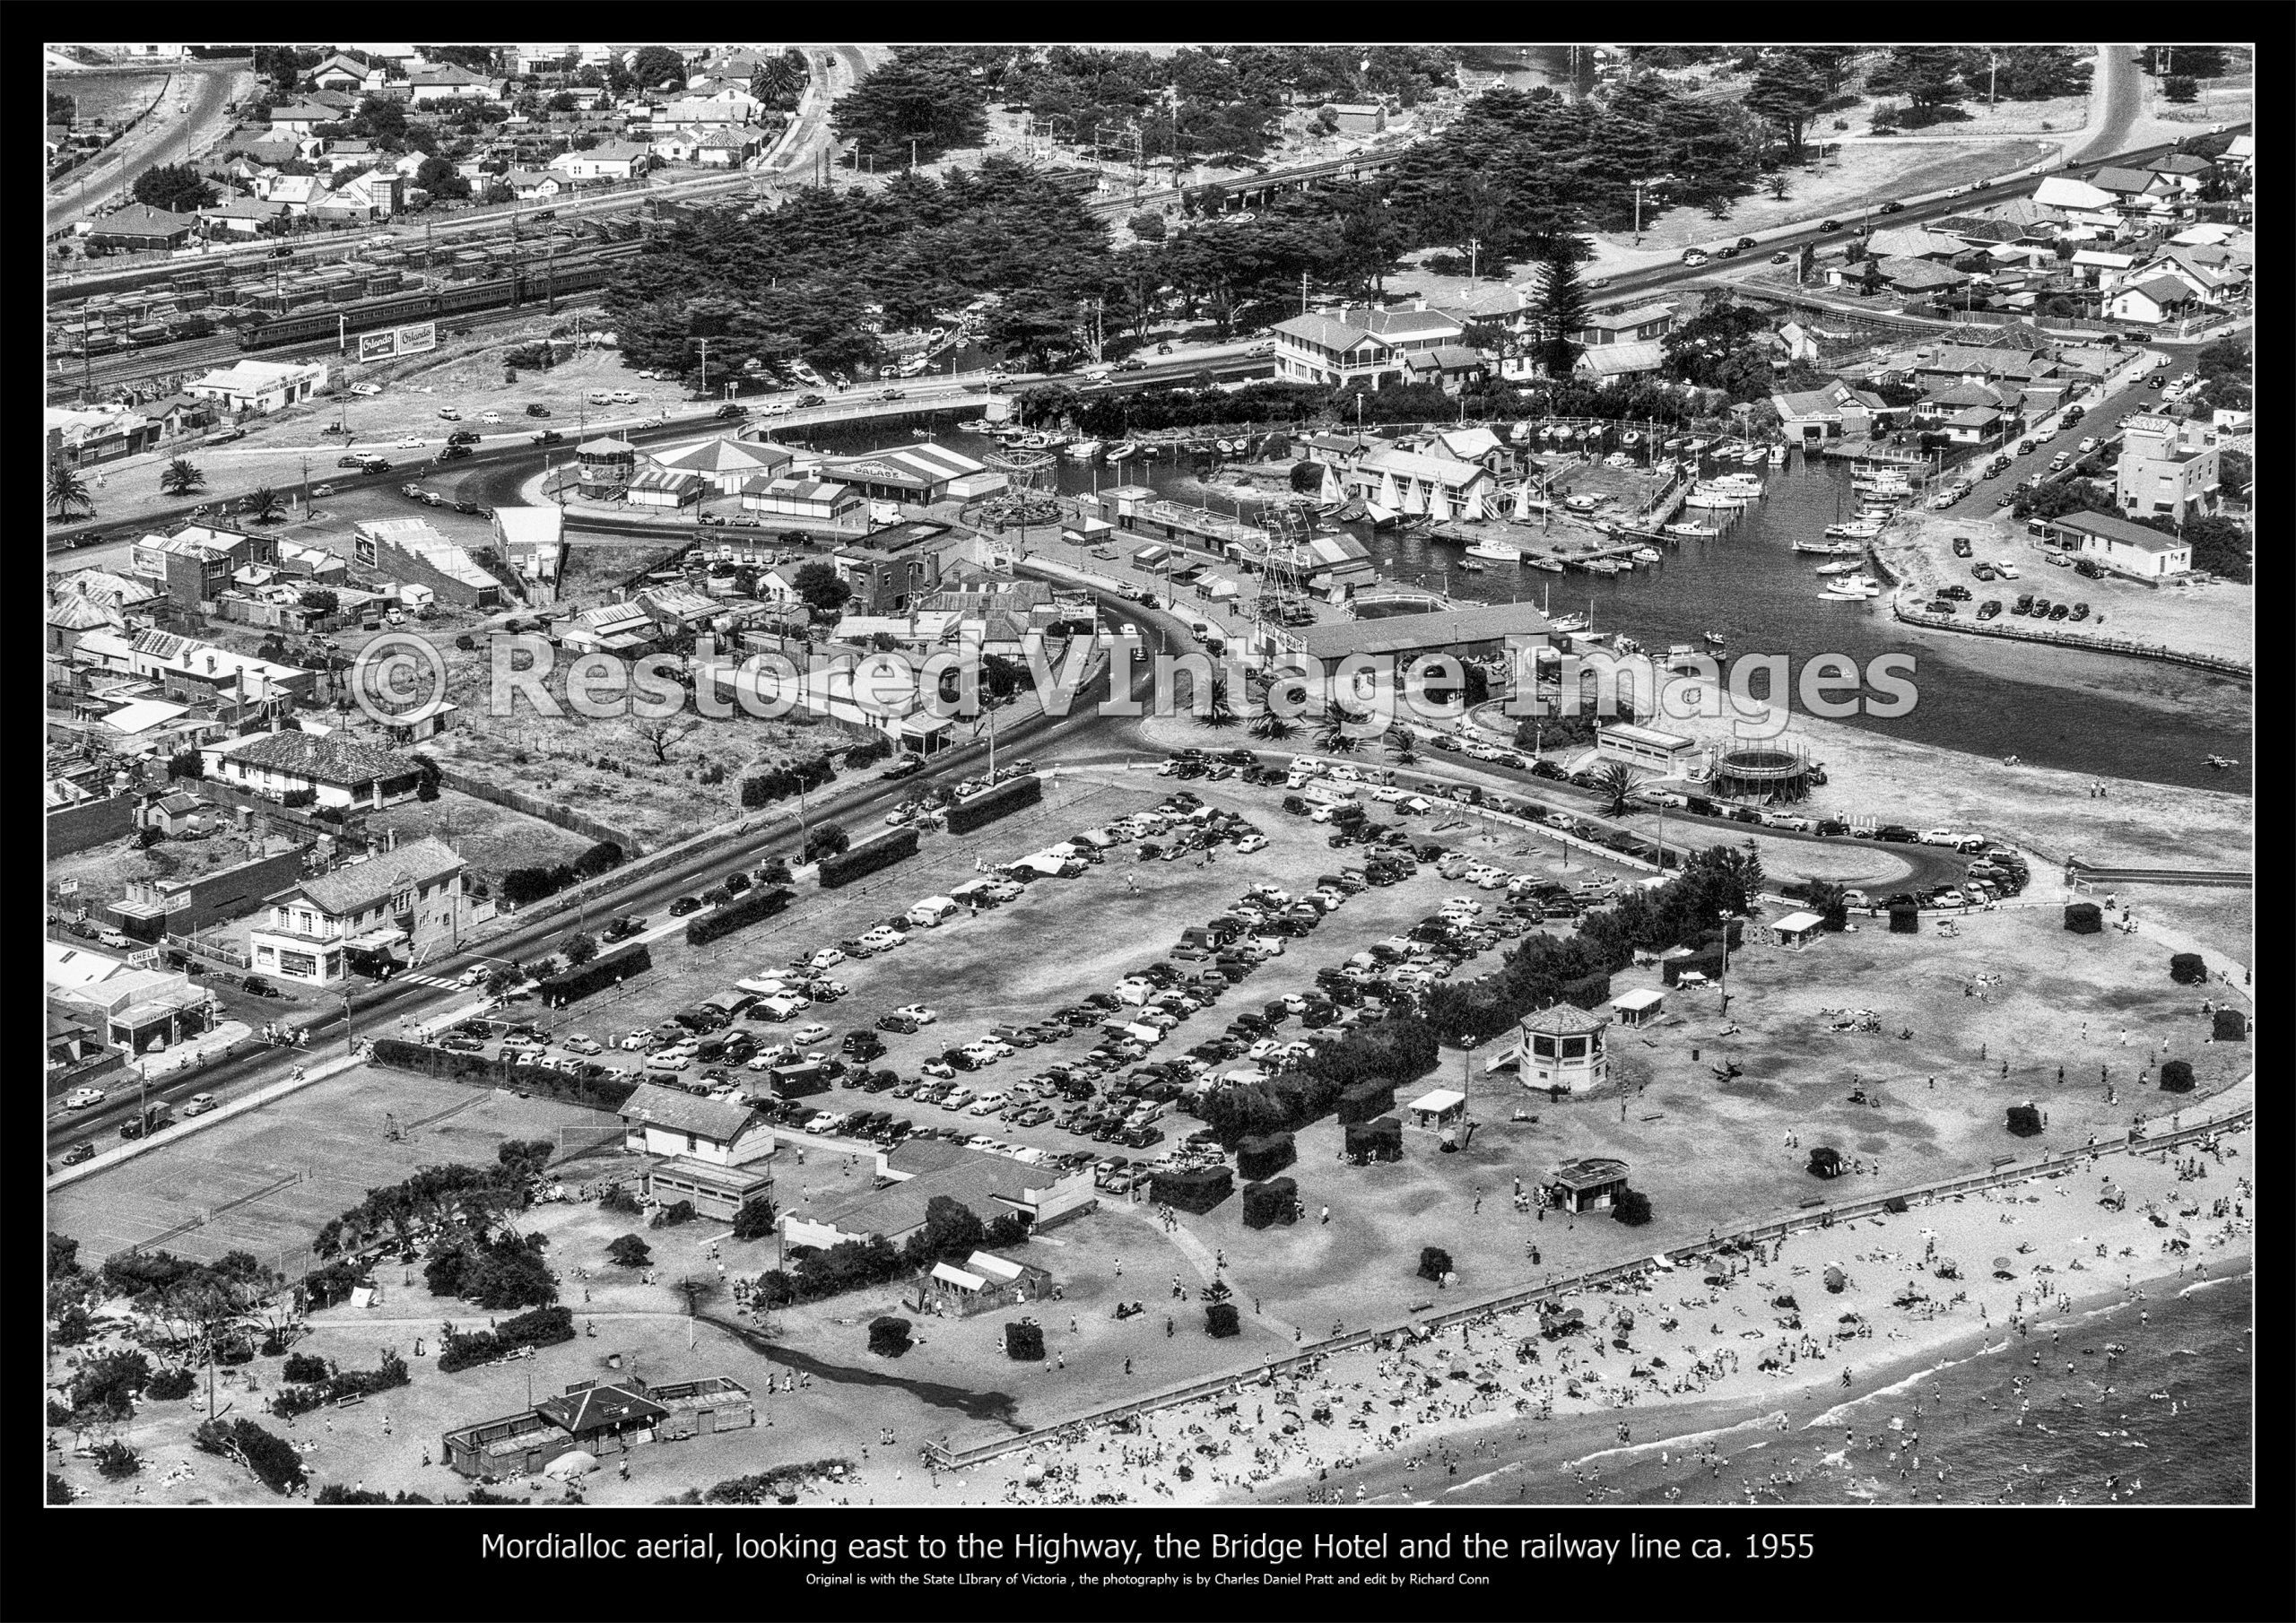 Mordialloc Aerial Looking East To The Highway, Bridge, Railway Line And Hotel Ca 1955